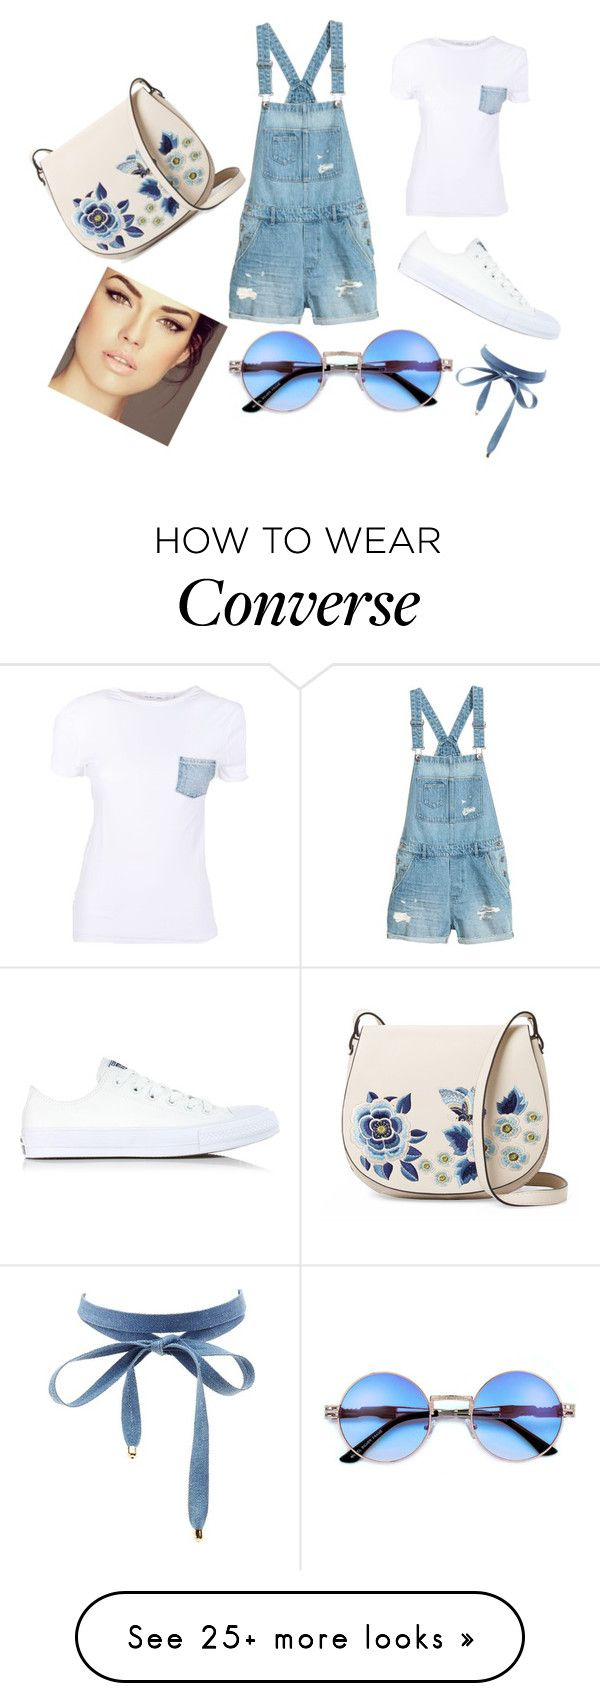 """Untitled #106"" by deni2004 on Polyvore featuring Helmut Lang, Converse, French Connection and Charlotte Russe"